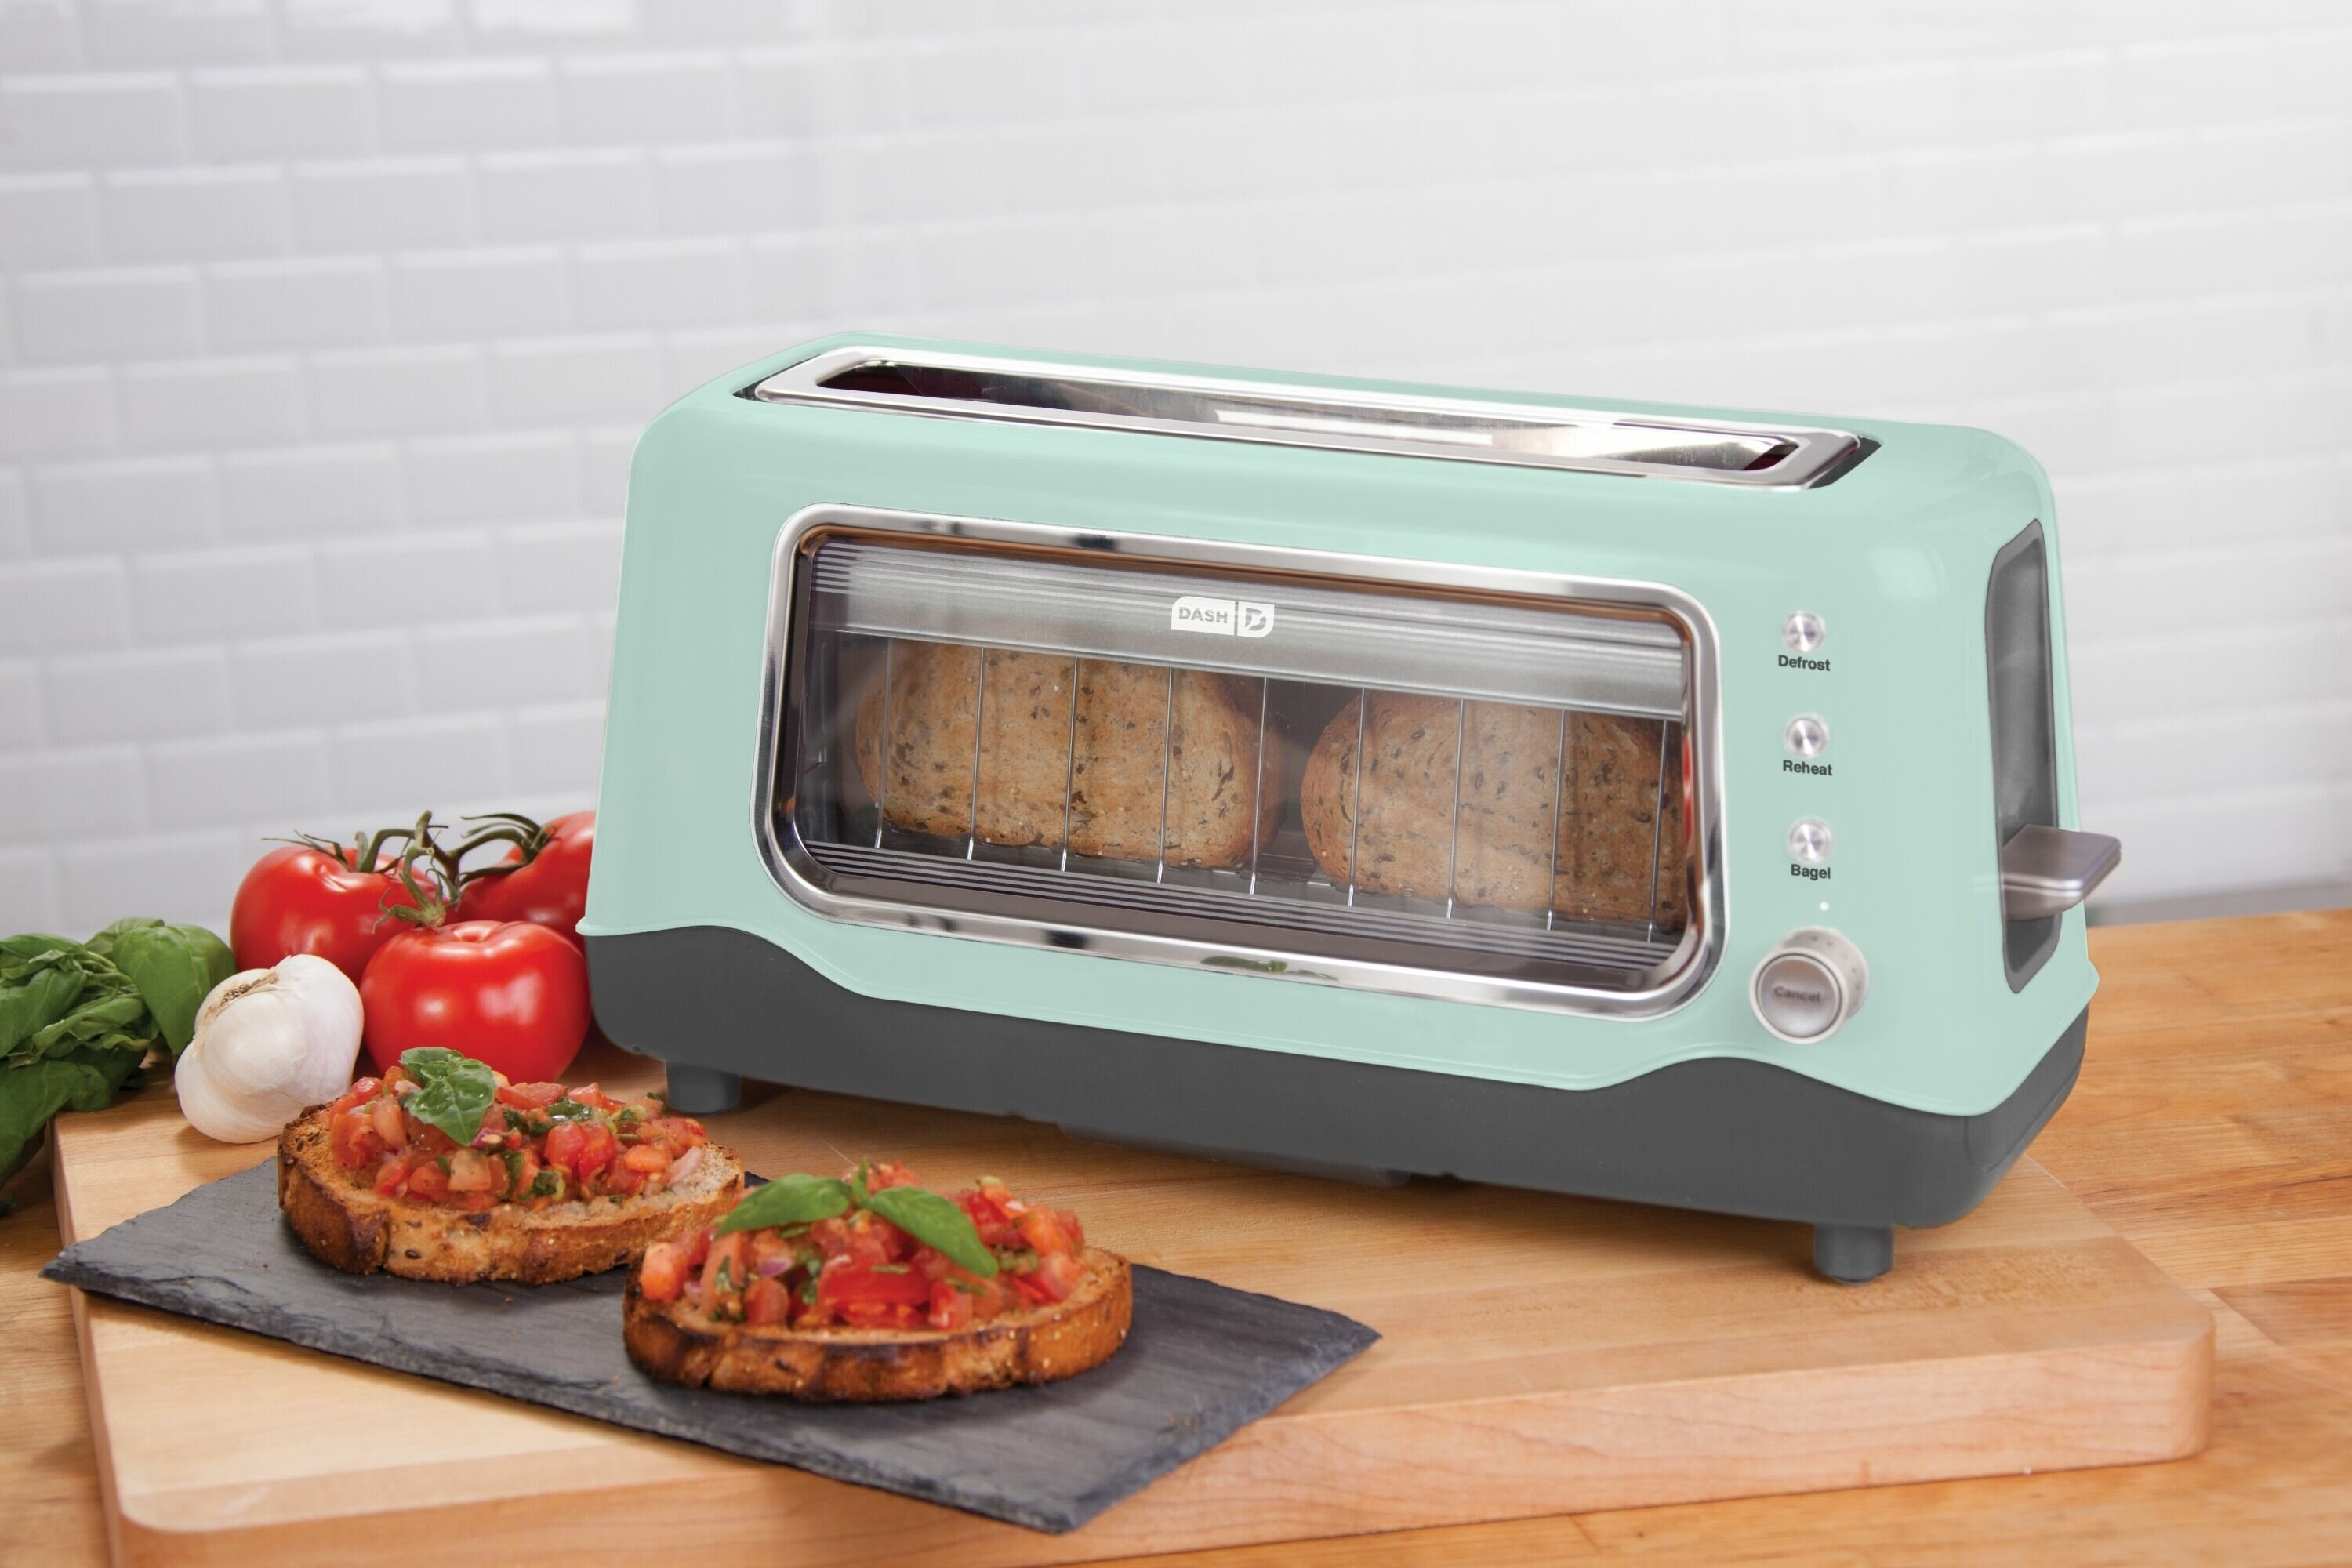 a light blue toaster with a window